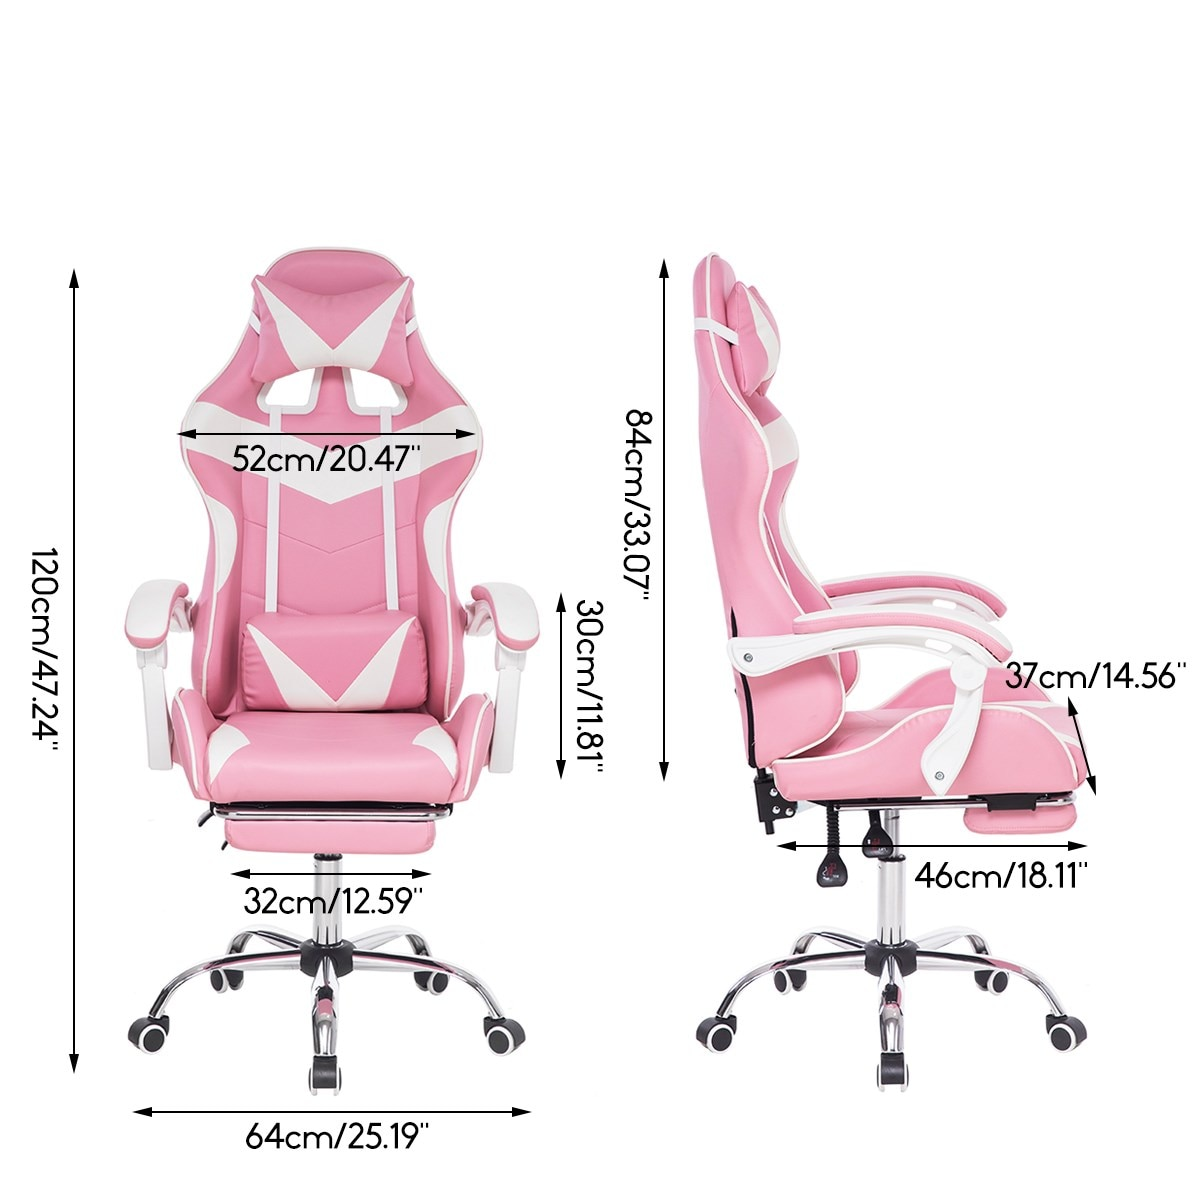 Hf4a8786a65a845c5a6dfe1229eebafcaa - Office Computer Chair WCG Gaming Chair Pink Silla Leather Desk Chair Internet Cafe Gamer Chair Household Armchair Office Chair